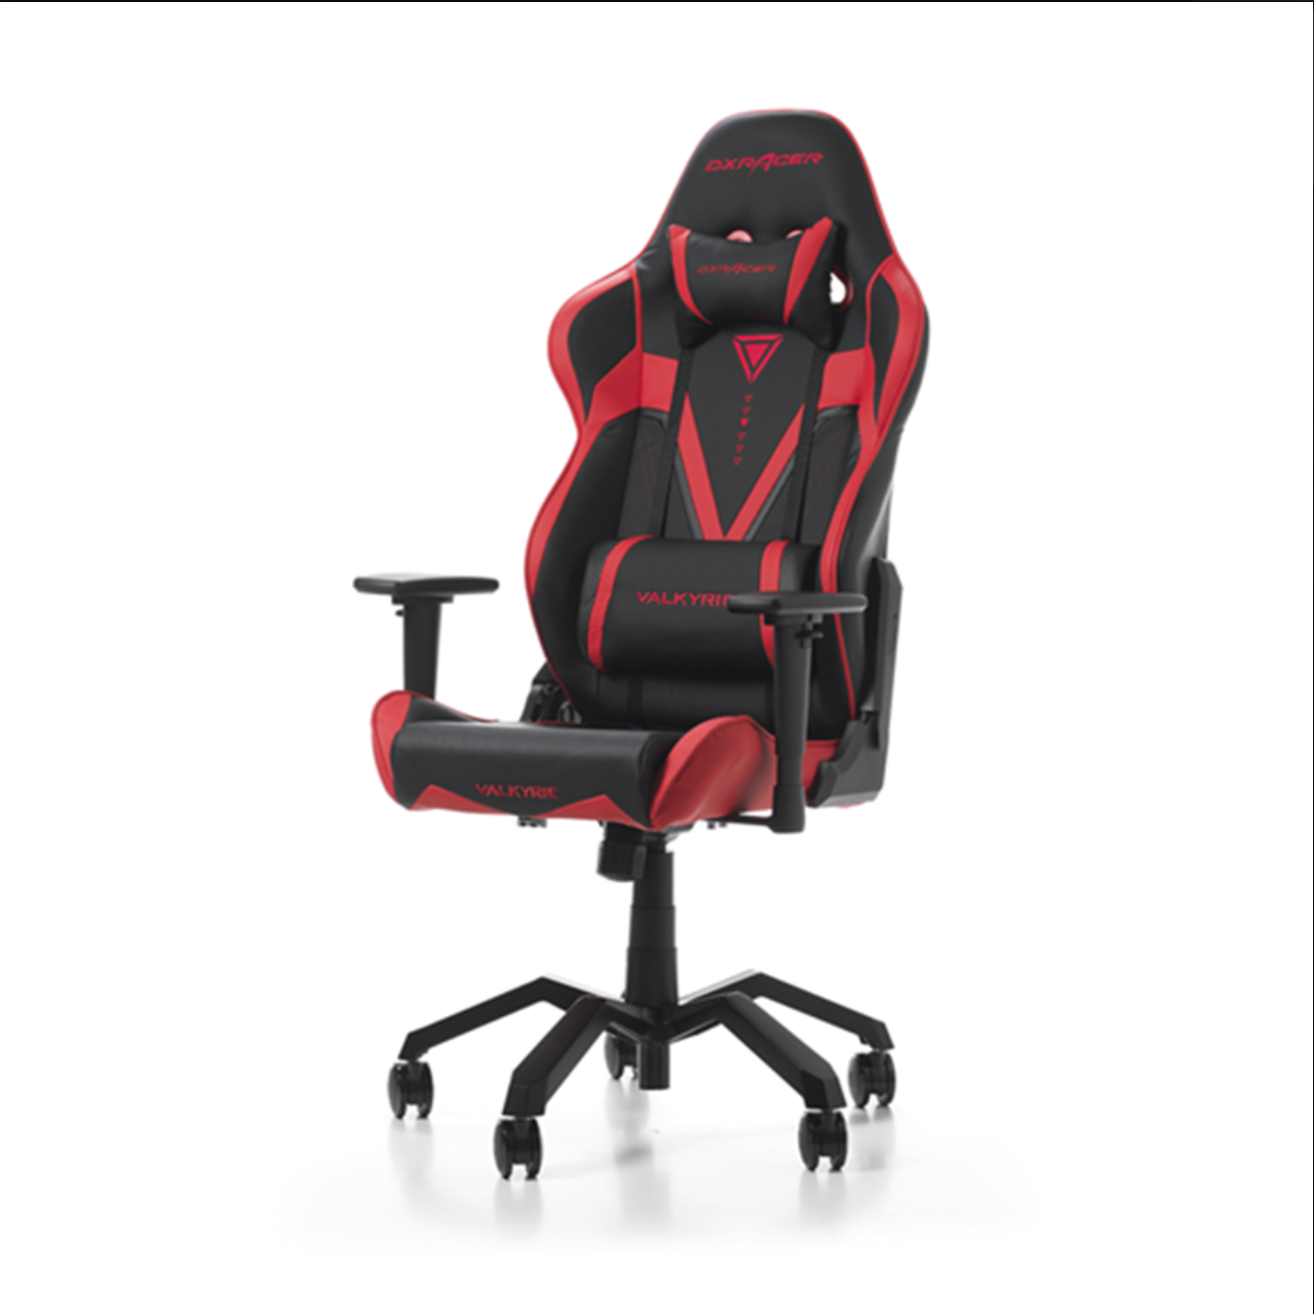 Valkyrie Series Conventional Pu Leather Gaming Chair Vb03 Na King And Valkyrie Series Gaming Chair Gaming Chair Dining Chair Slipcovers Chair